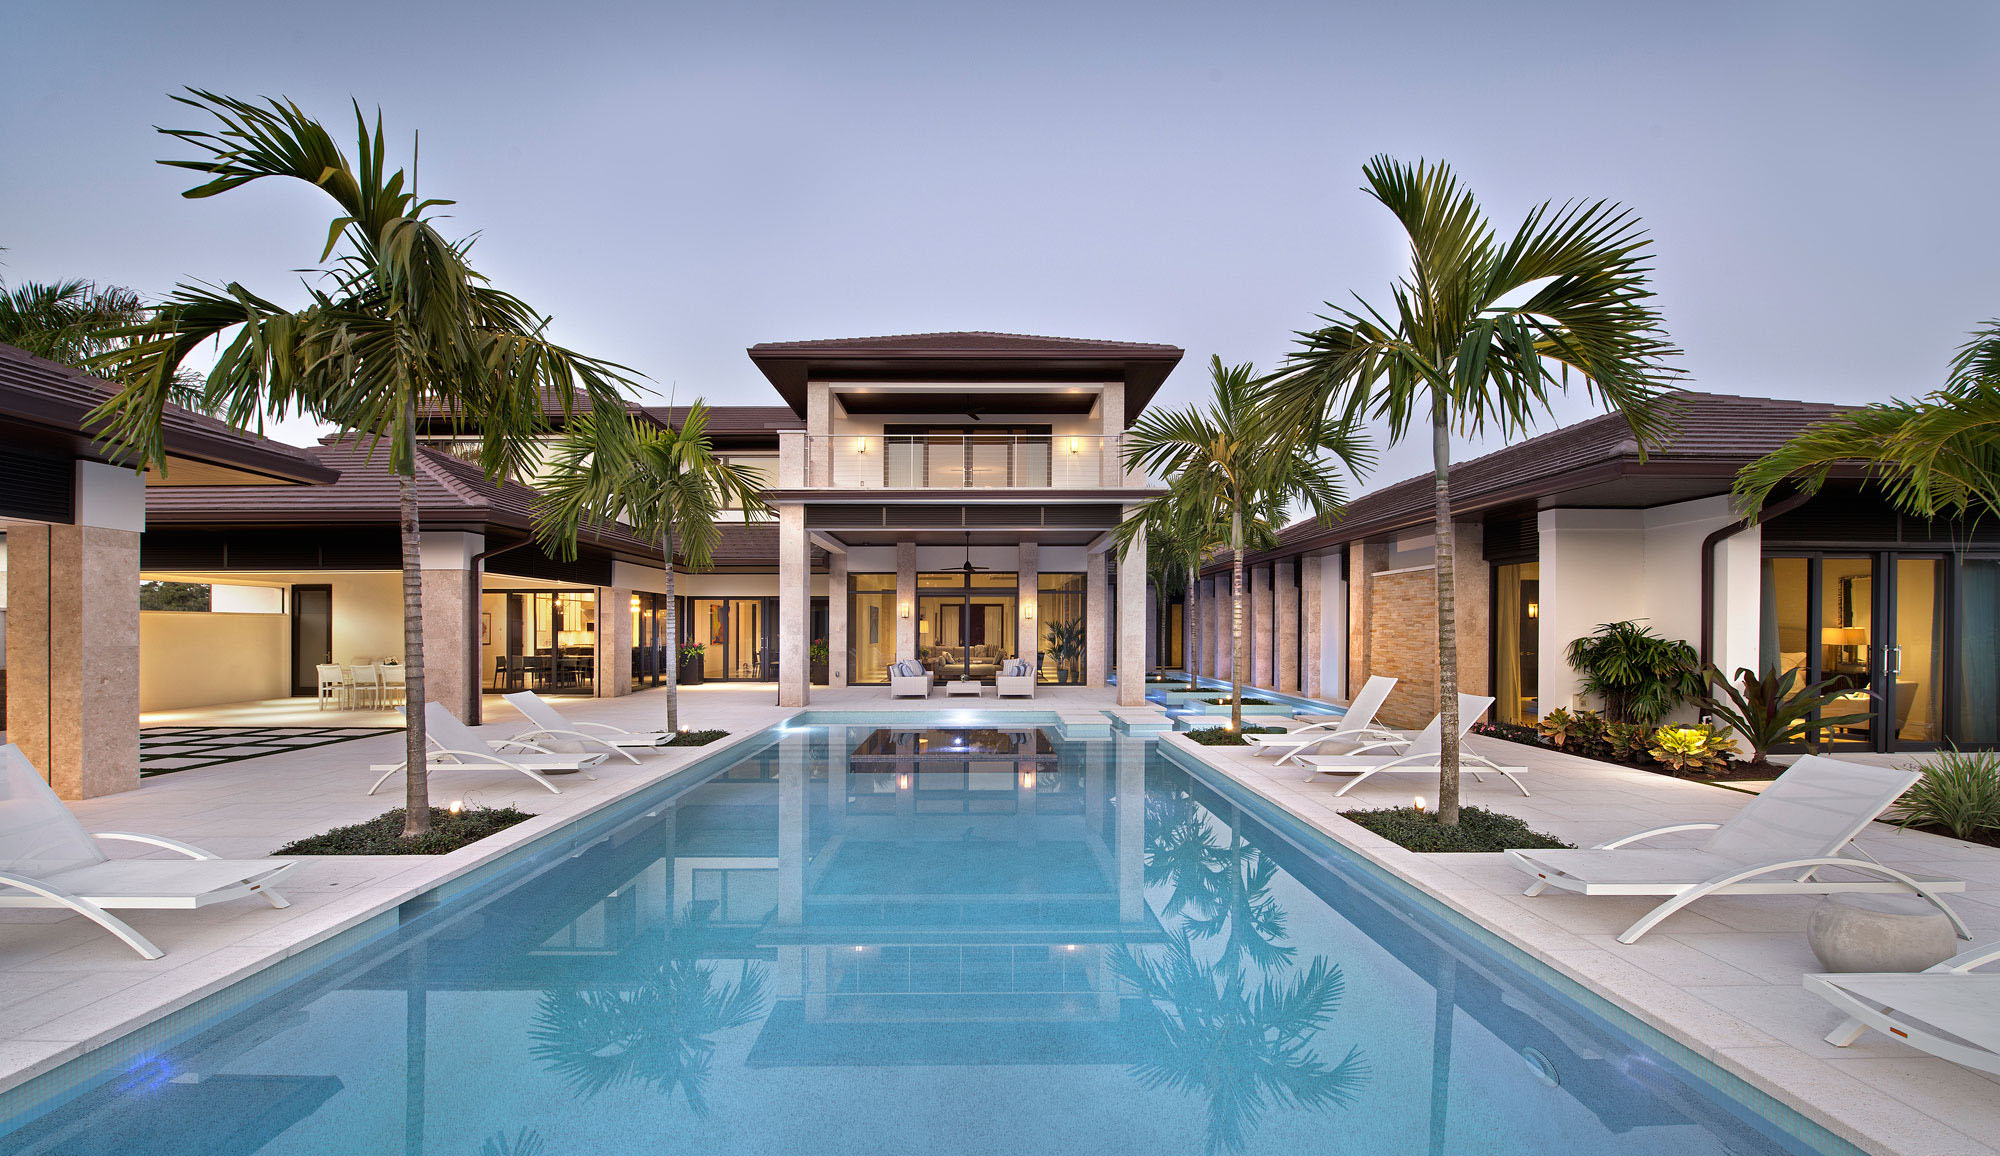 Custom dream home in florida with elegant swimming pool for Contemporary mansions